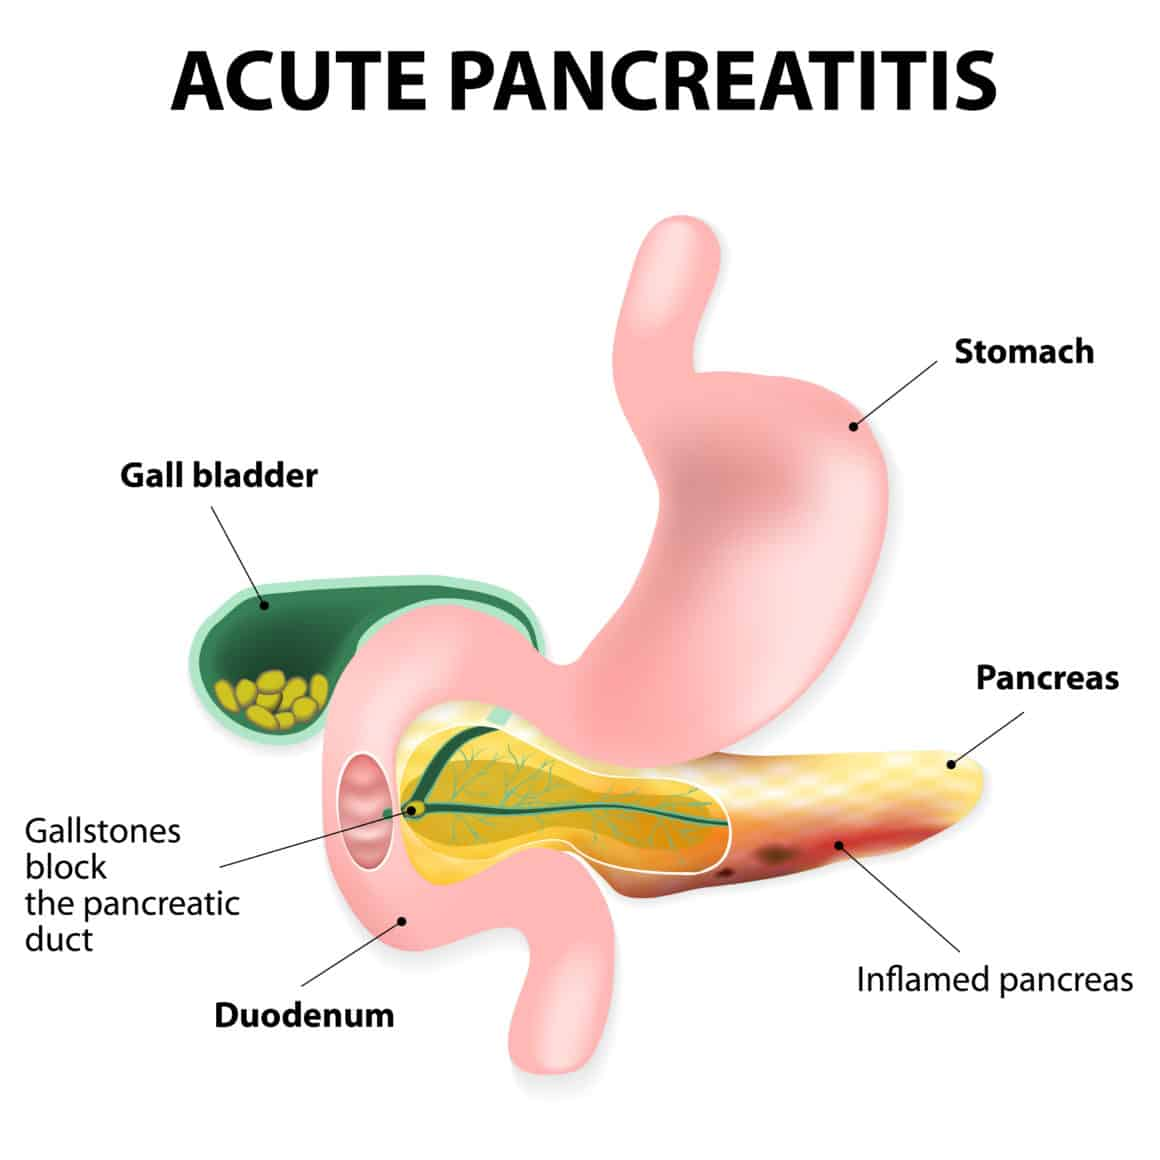 Acute pancreatitis is an inflammation of the pancreas. Gallstones block the flow of pancreatic juices into the duodenum. Digestive enzymes become active in pancreas, where they destroy healthy tissue.